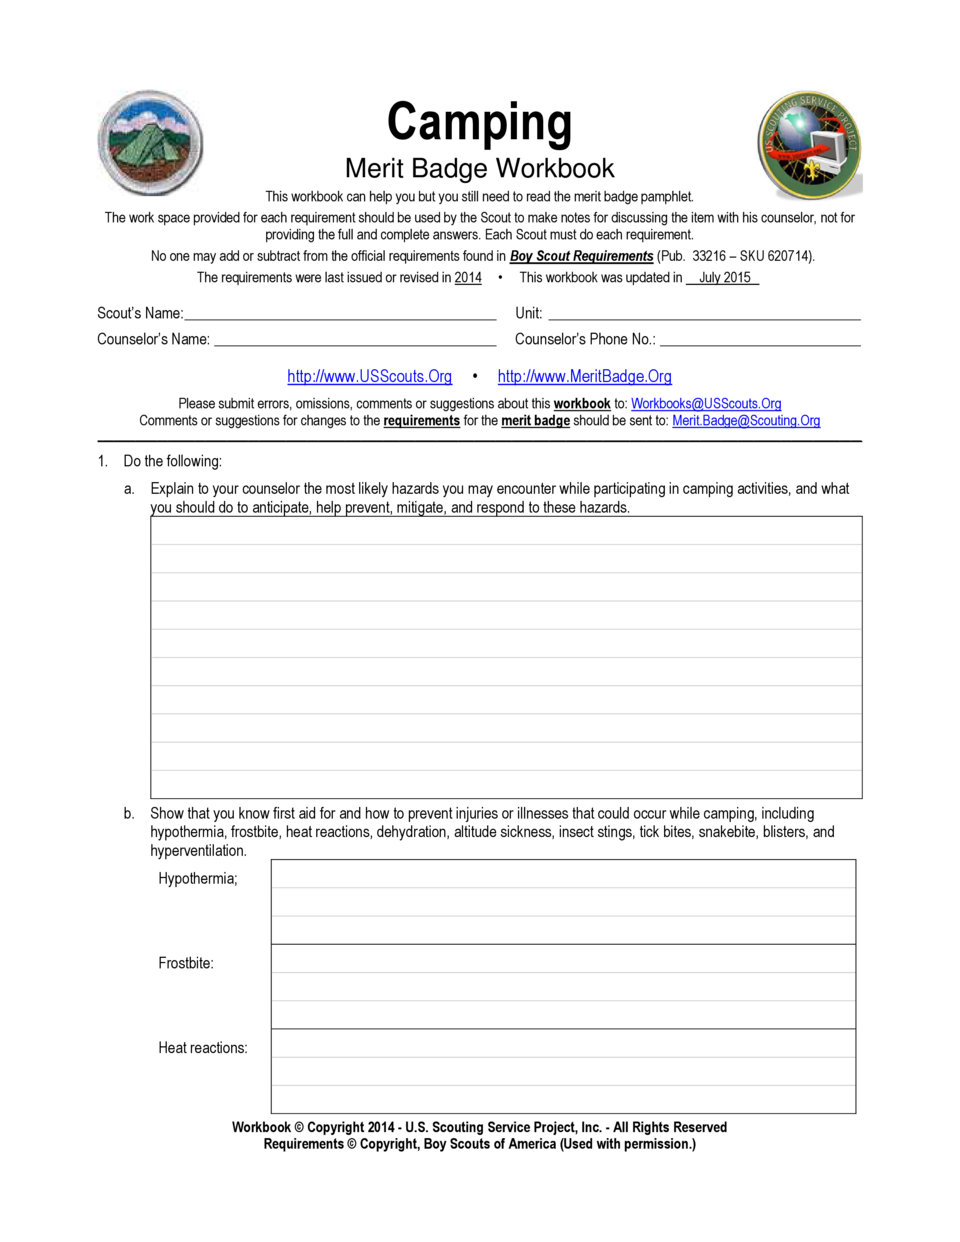 worksheet Weather Merit Badge Worksheet camping merit badge simplebooklet com workbook this can help you but still need to read the